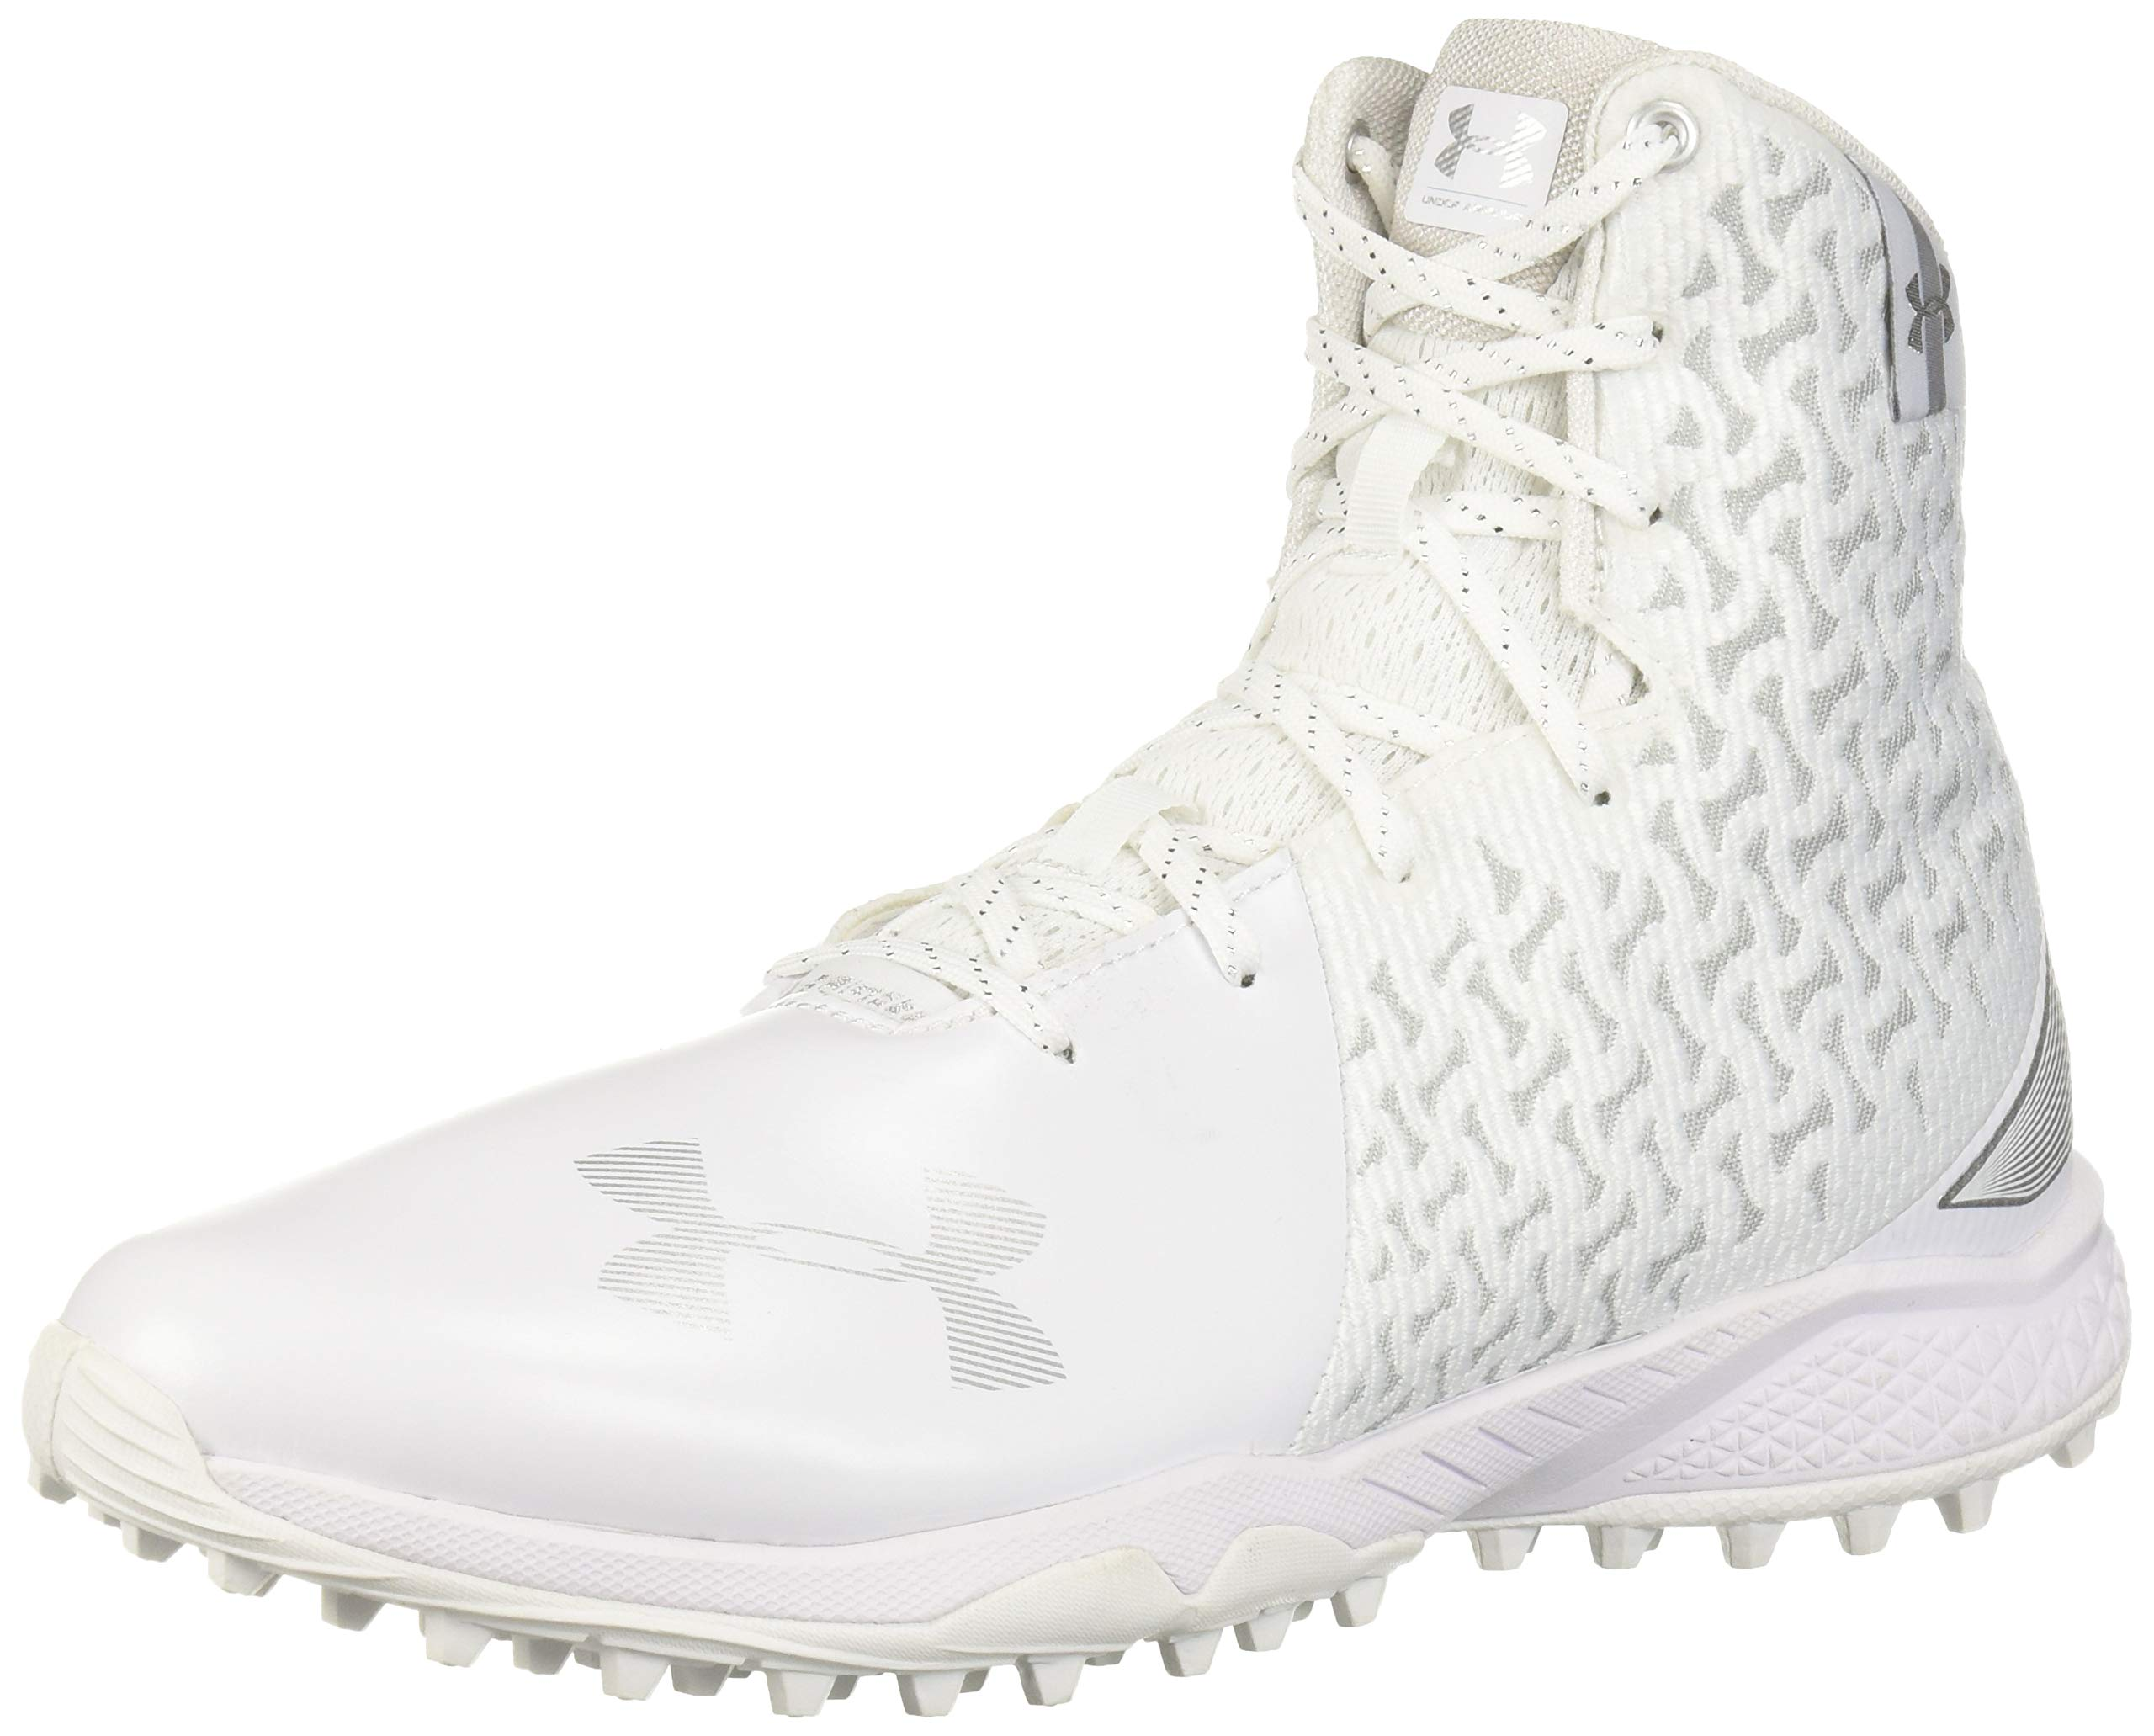 Under Armour Women's Highlight Turf Lacrosse Shoe, White (100)/, 10.5 by Under Armour